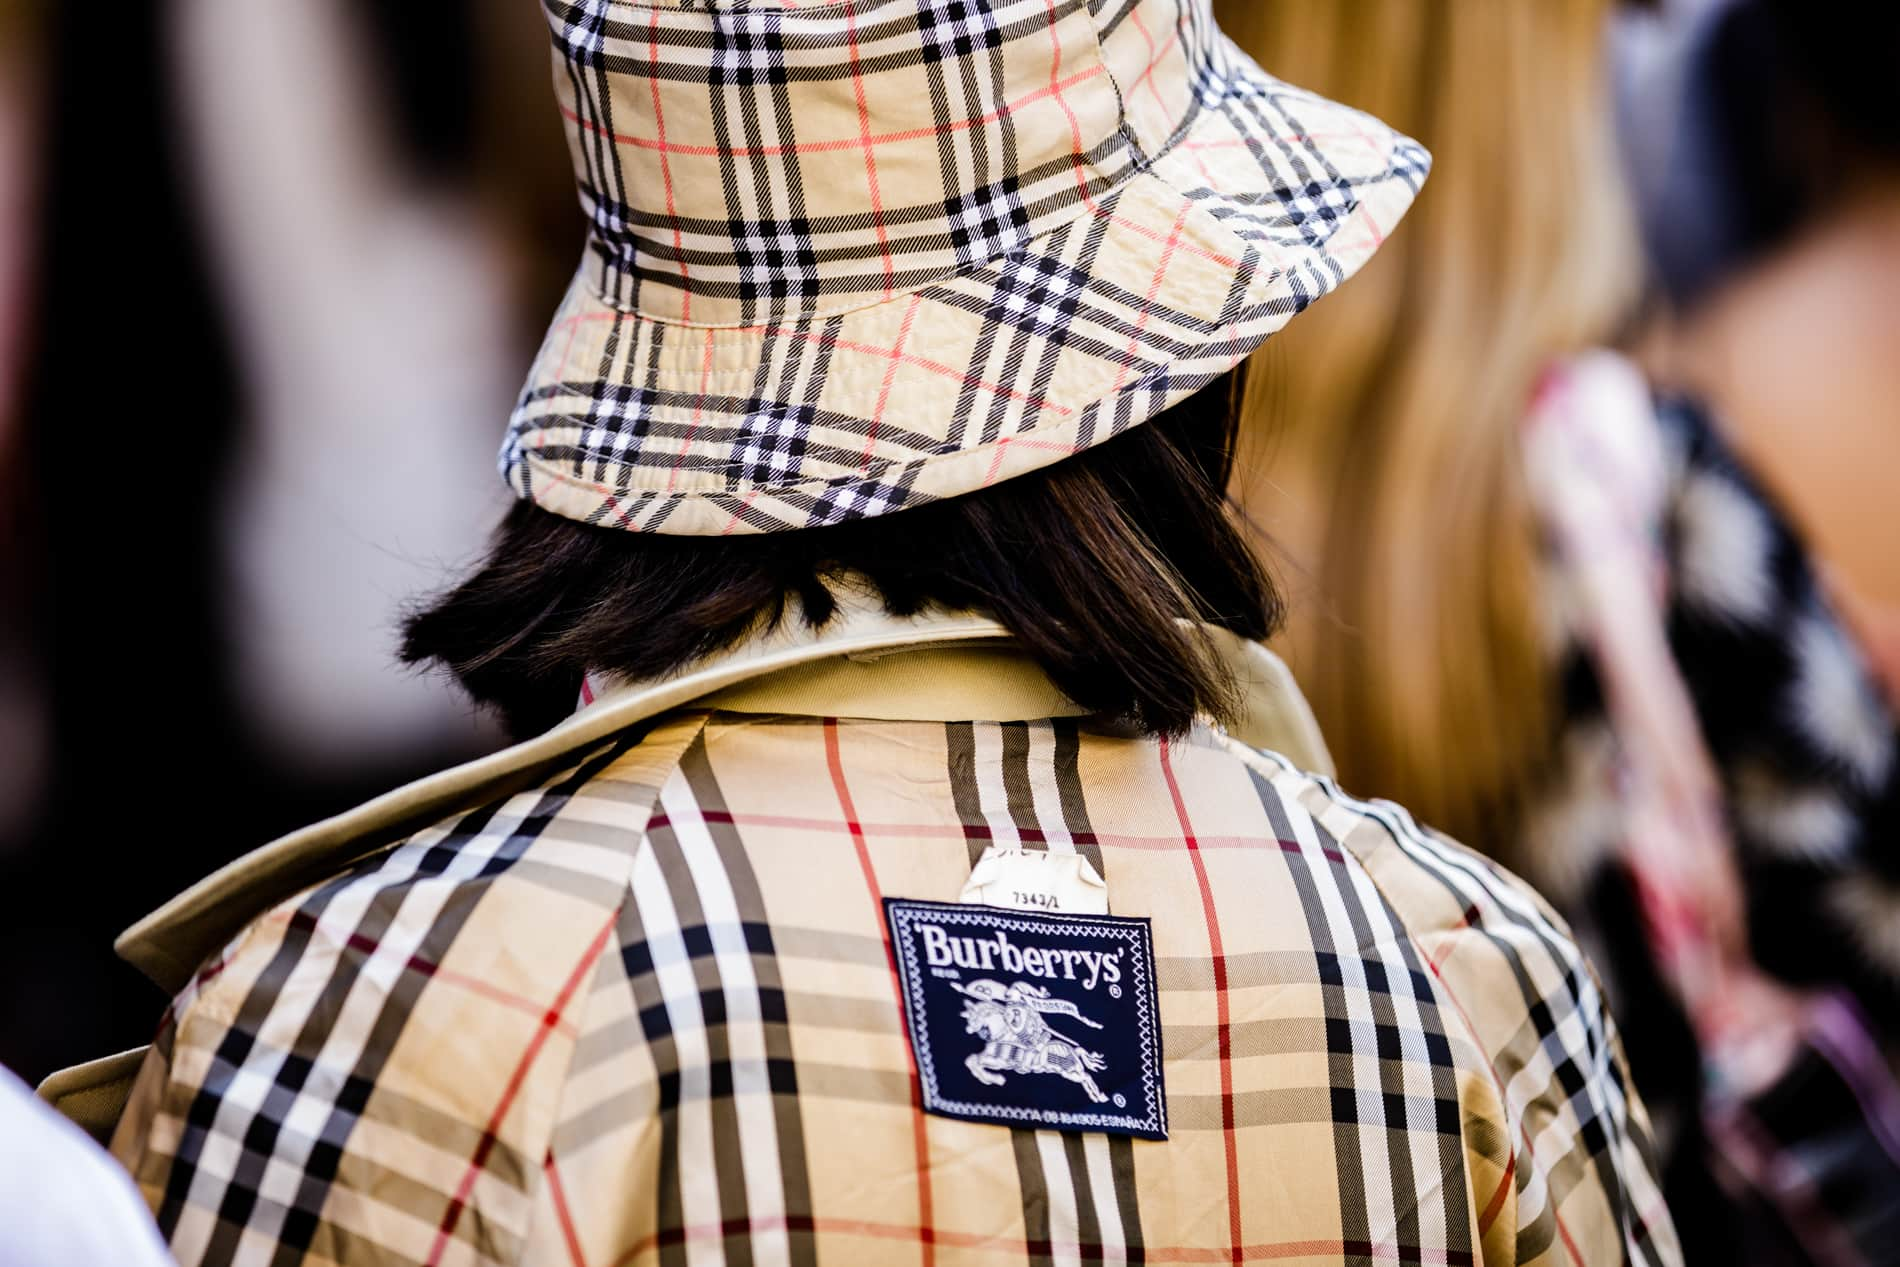 Trend to try: Bucket hats for your bad hair days